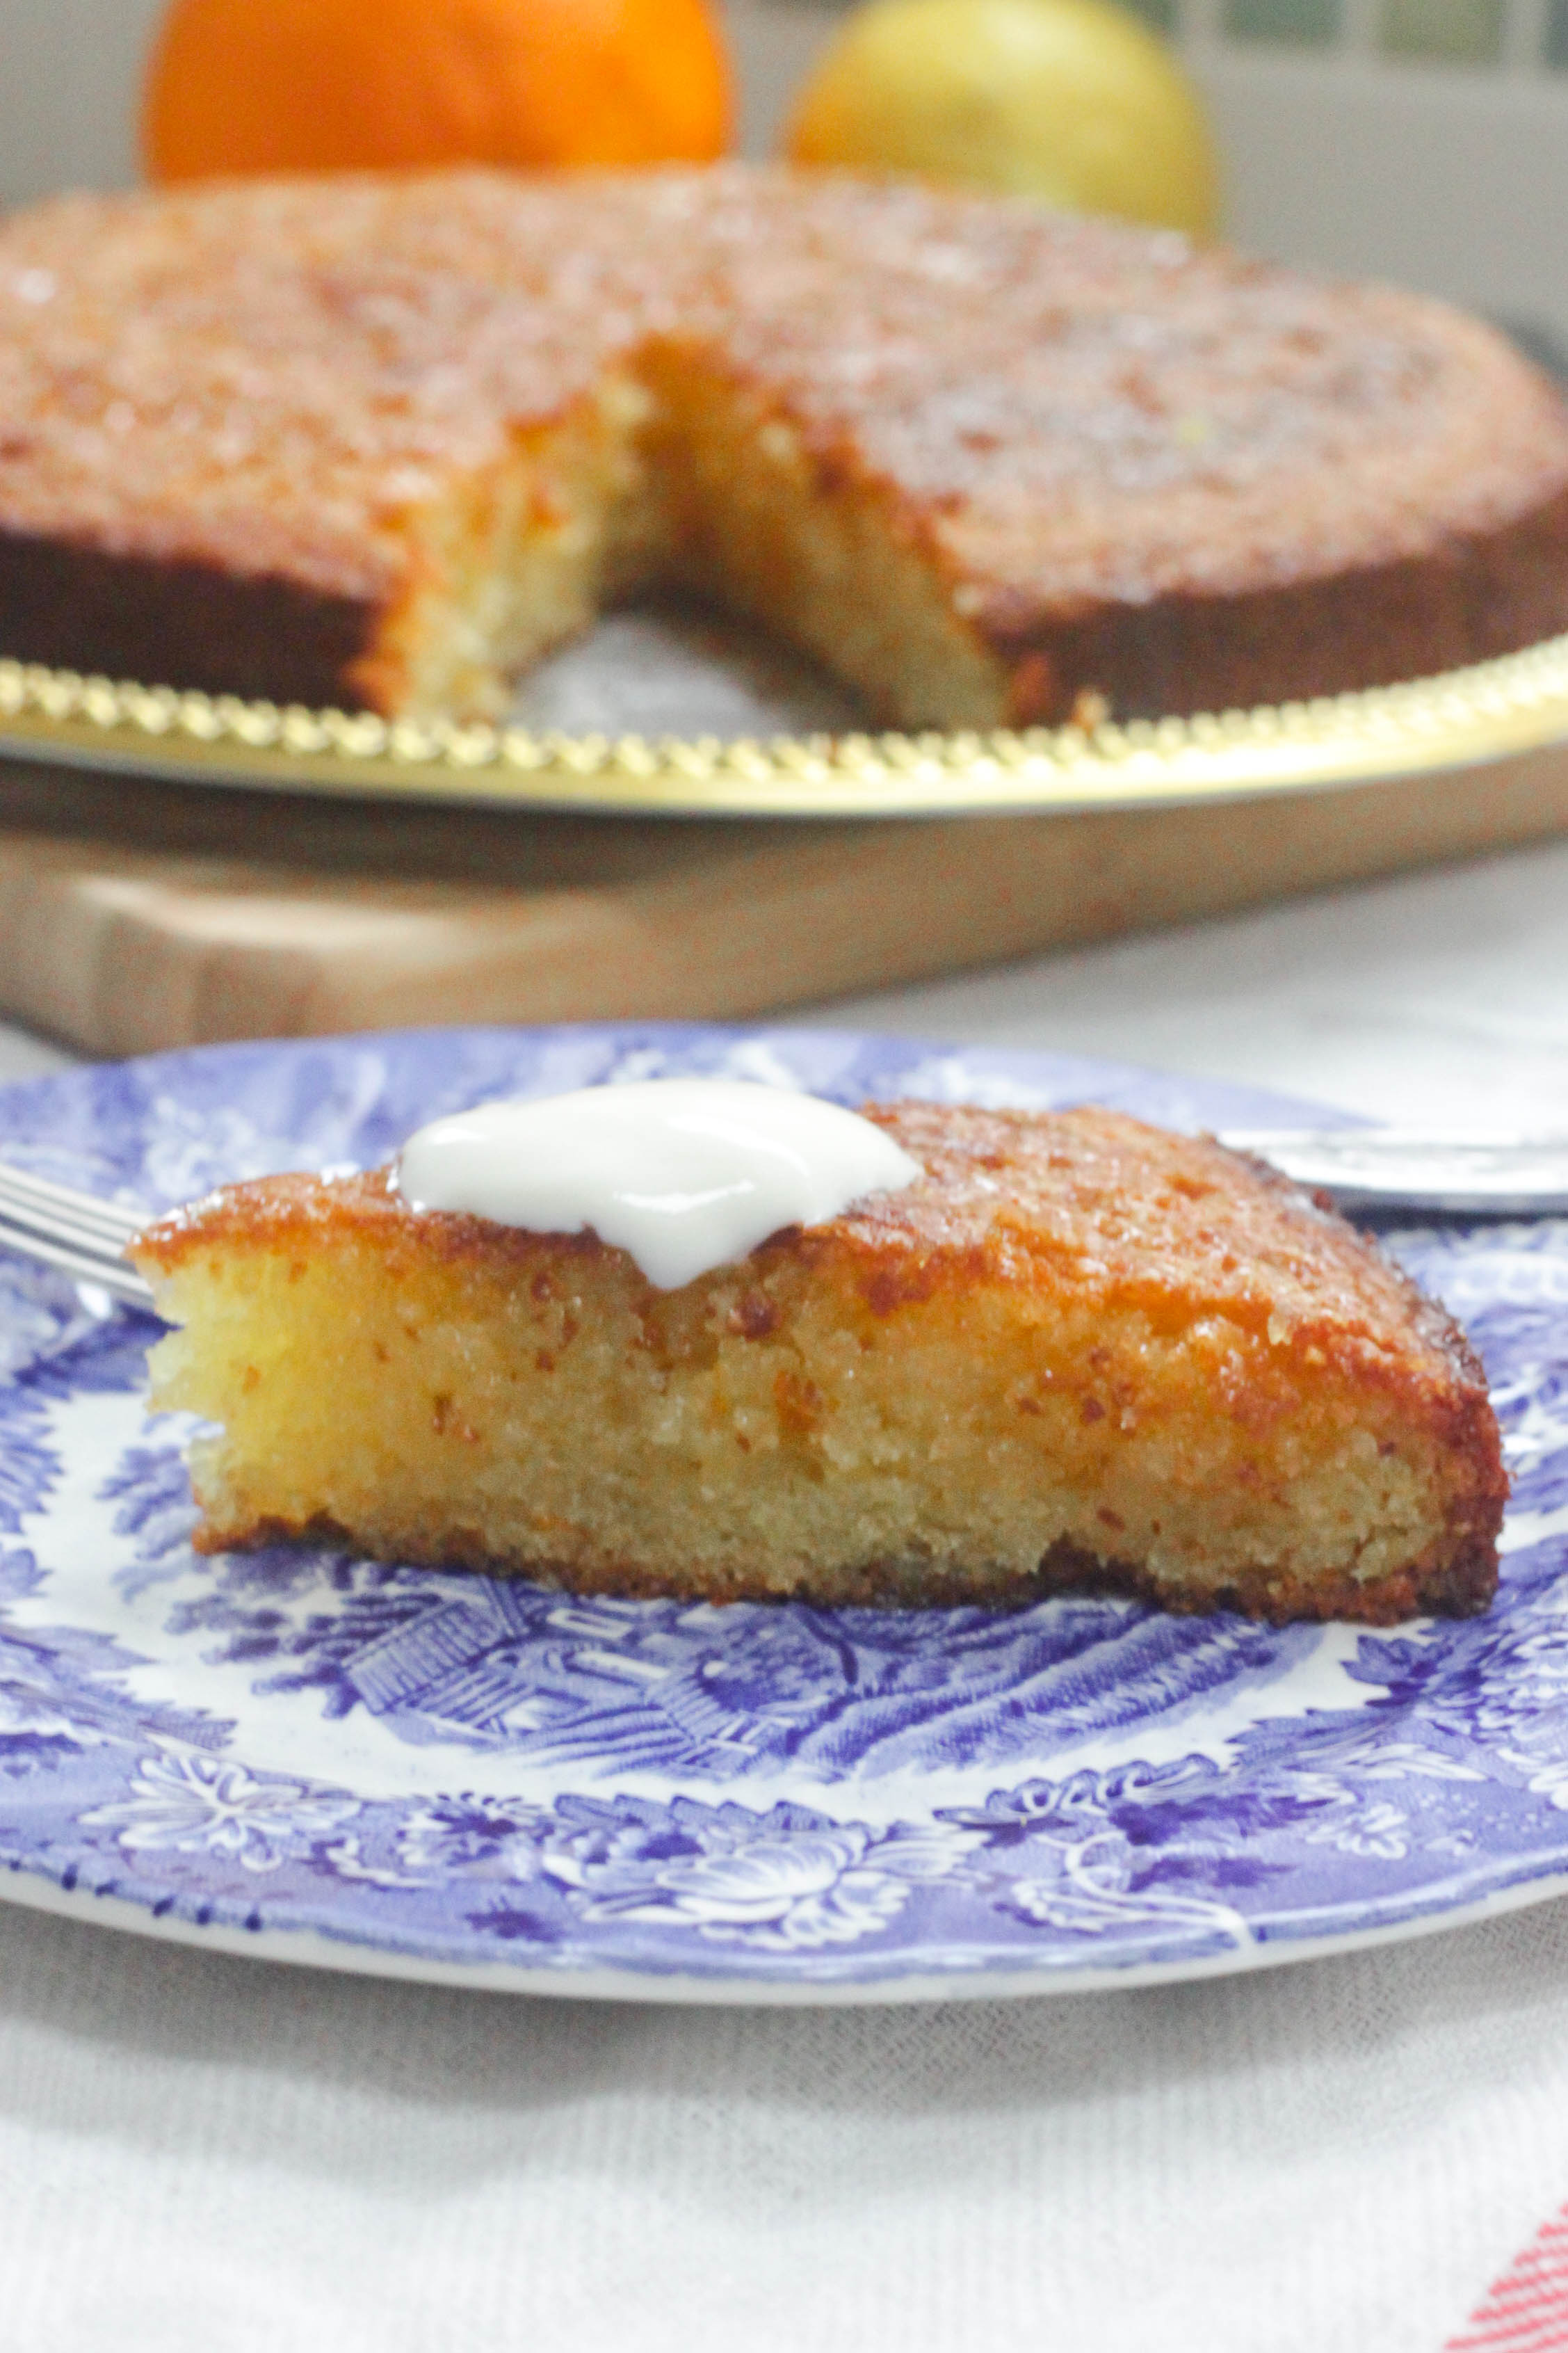 Tunisian Orange And Almond Cake